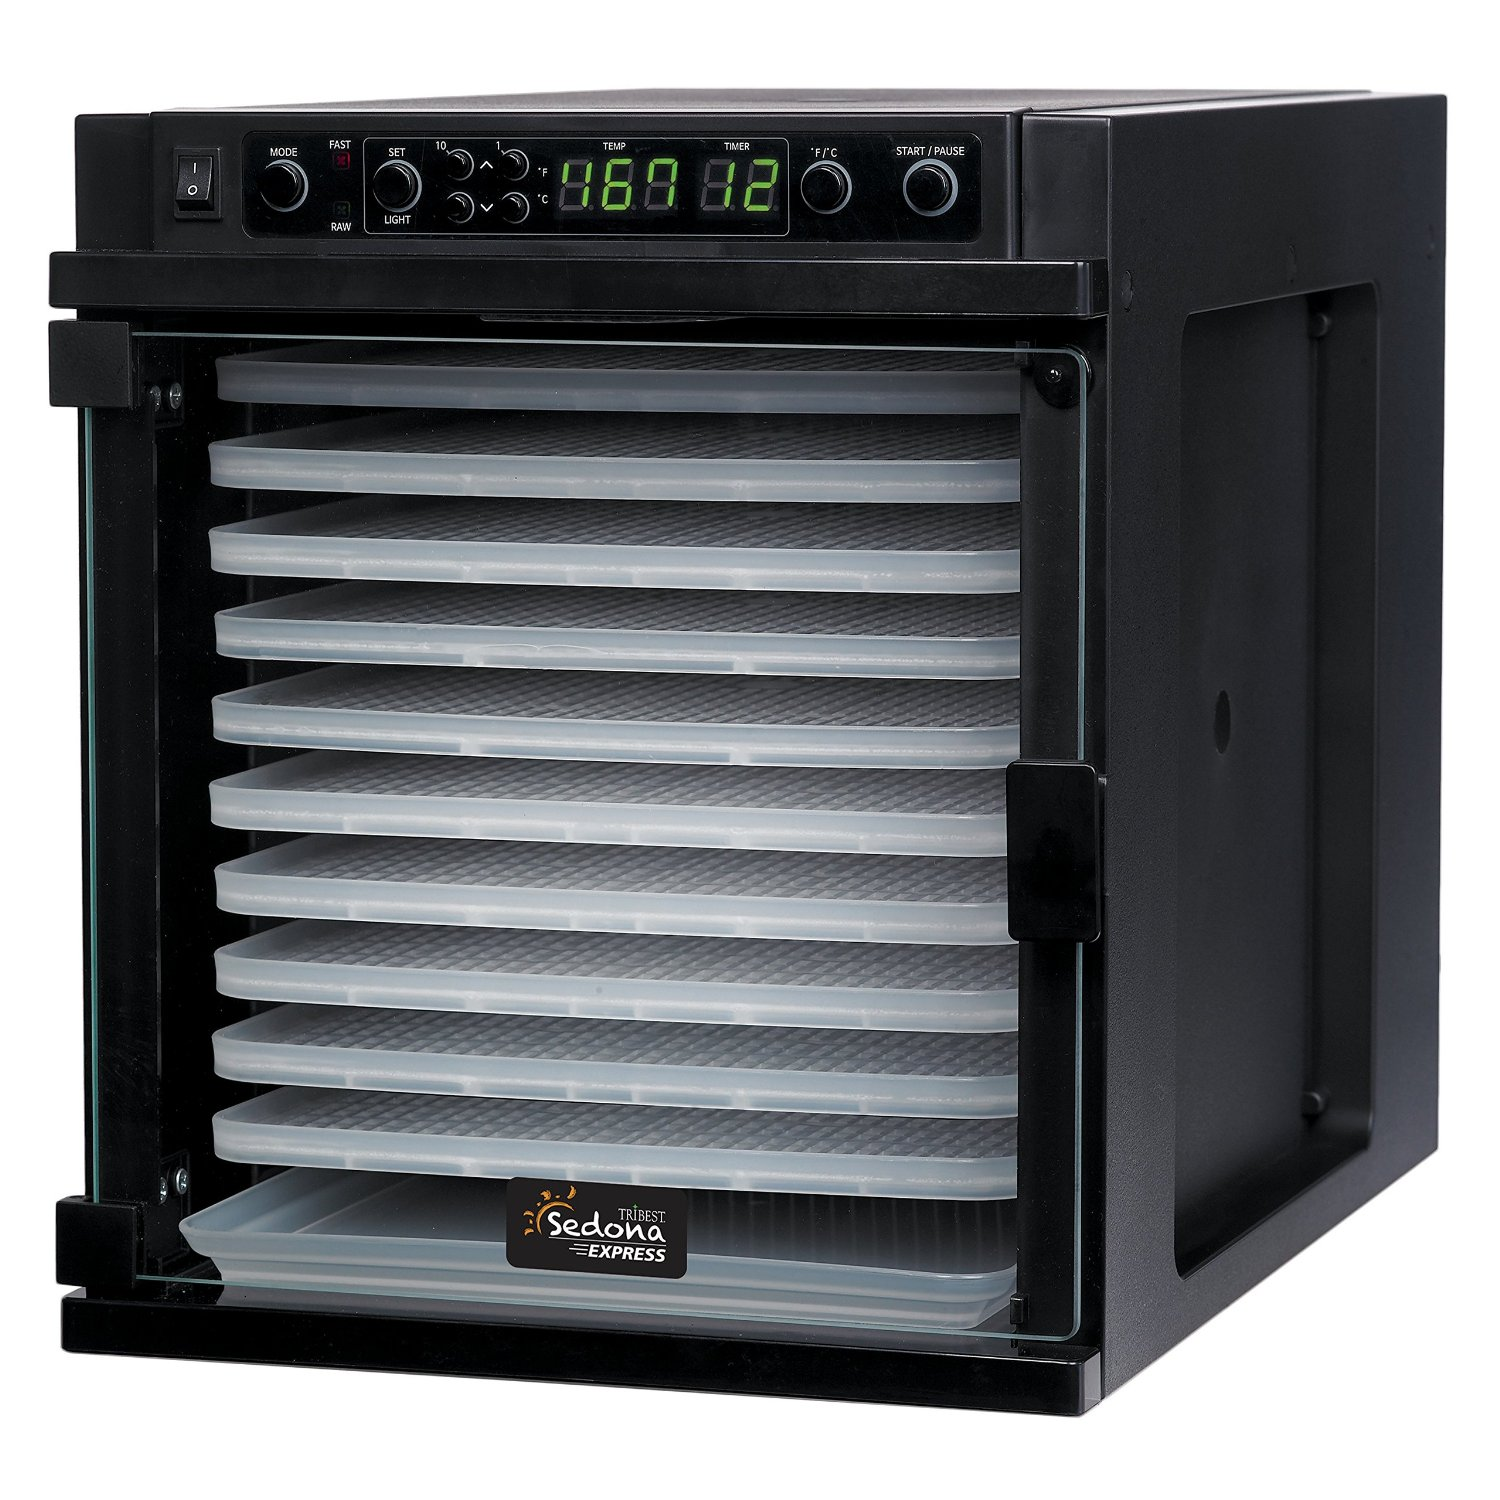 Tribest Sedona Express SDE-P6280-F Digital Food Dehydrato...